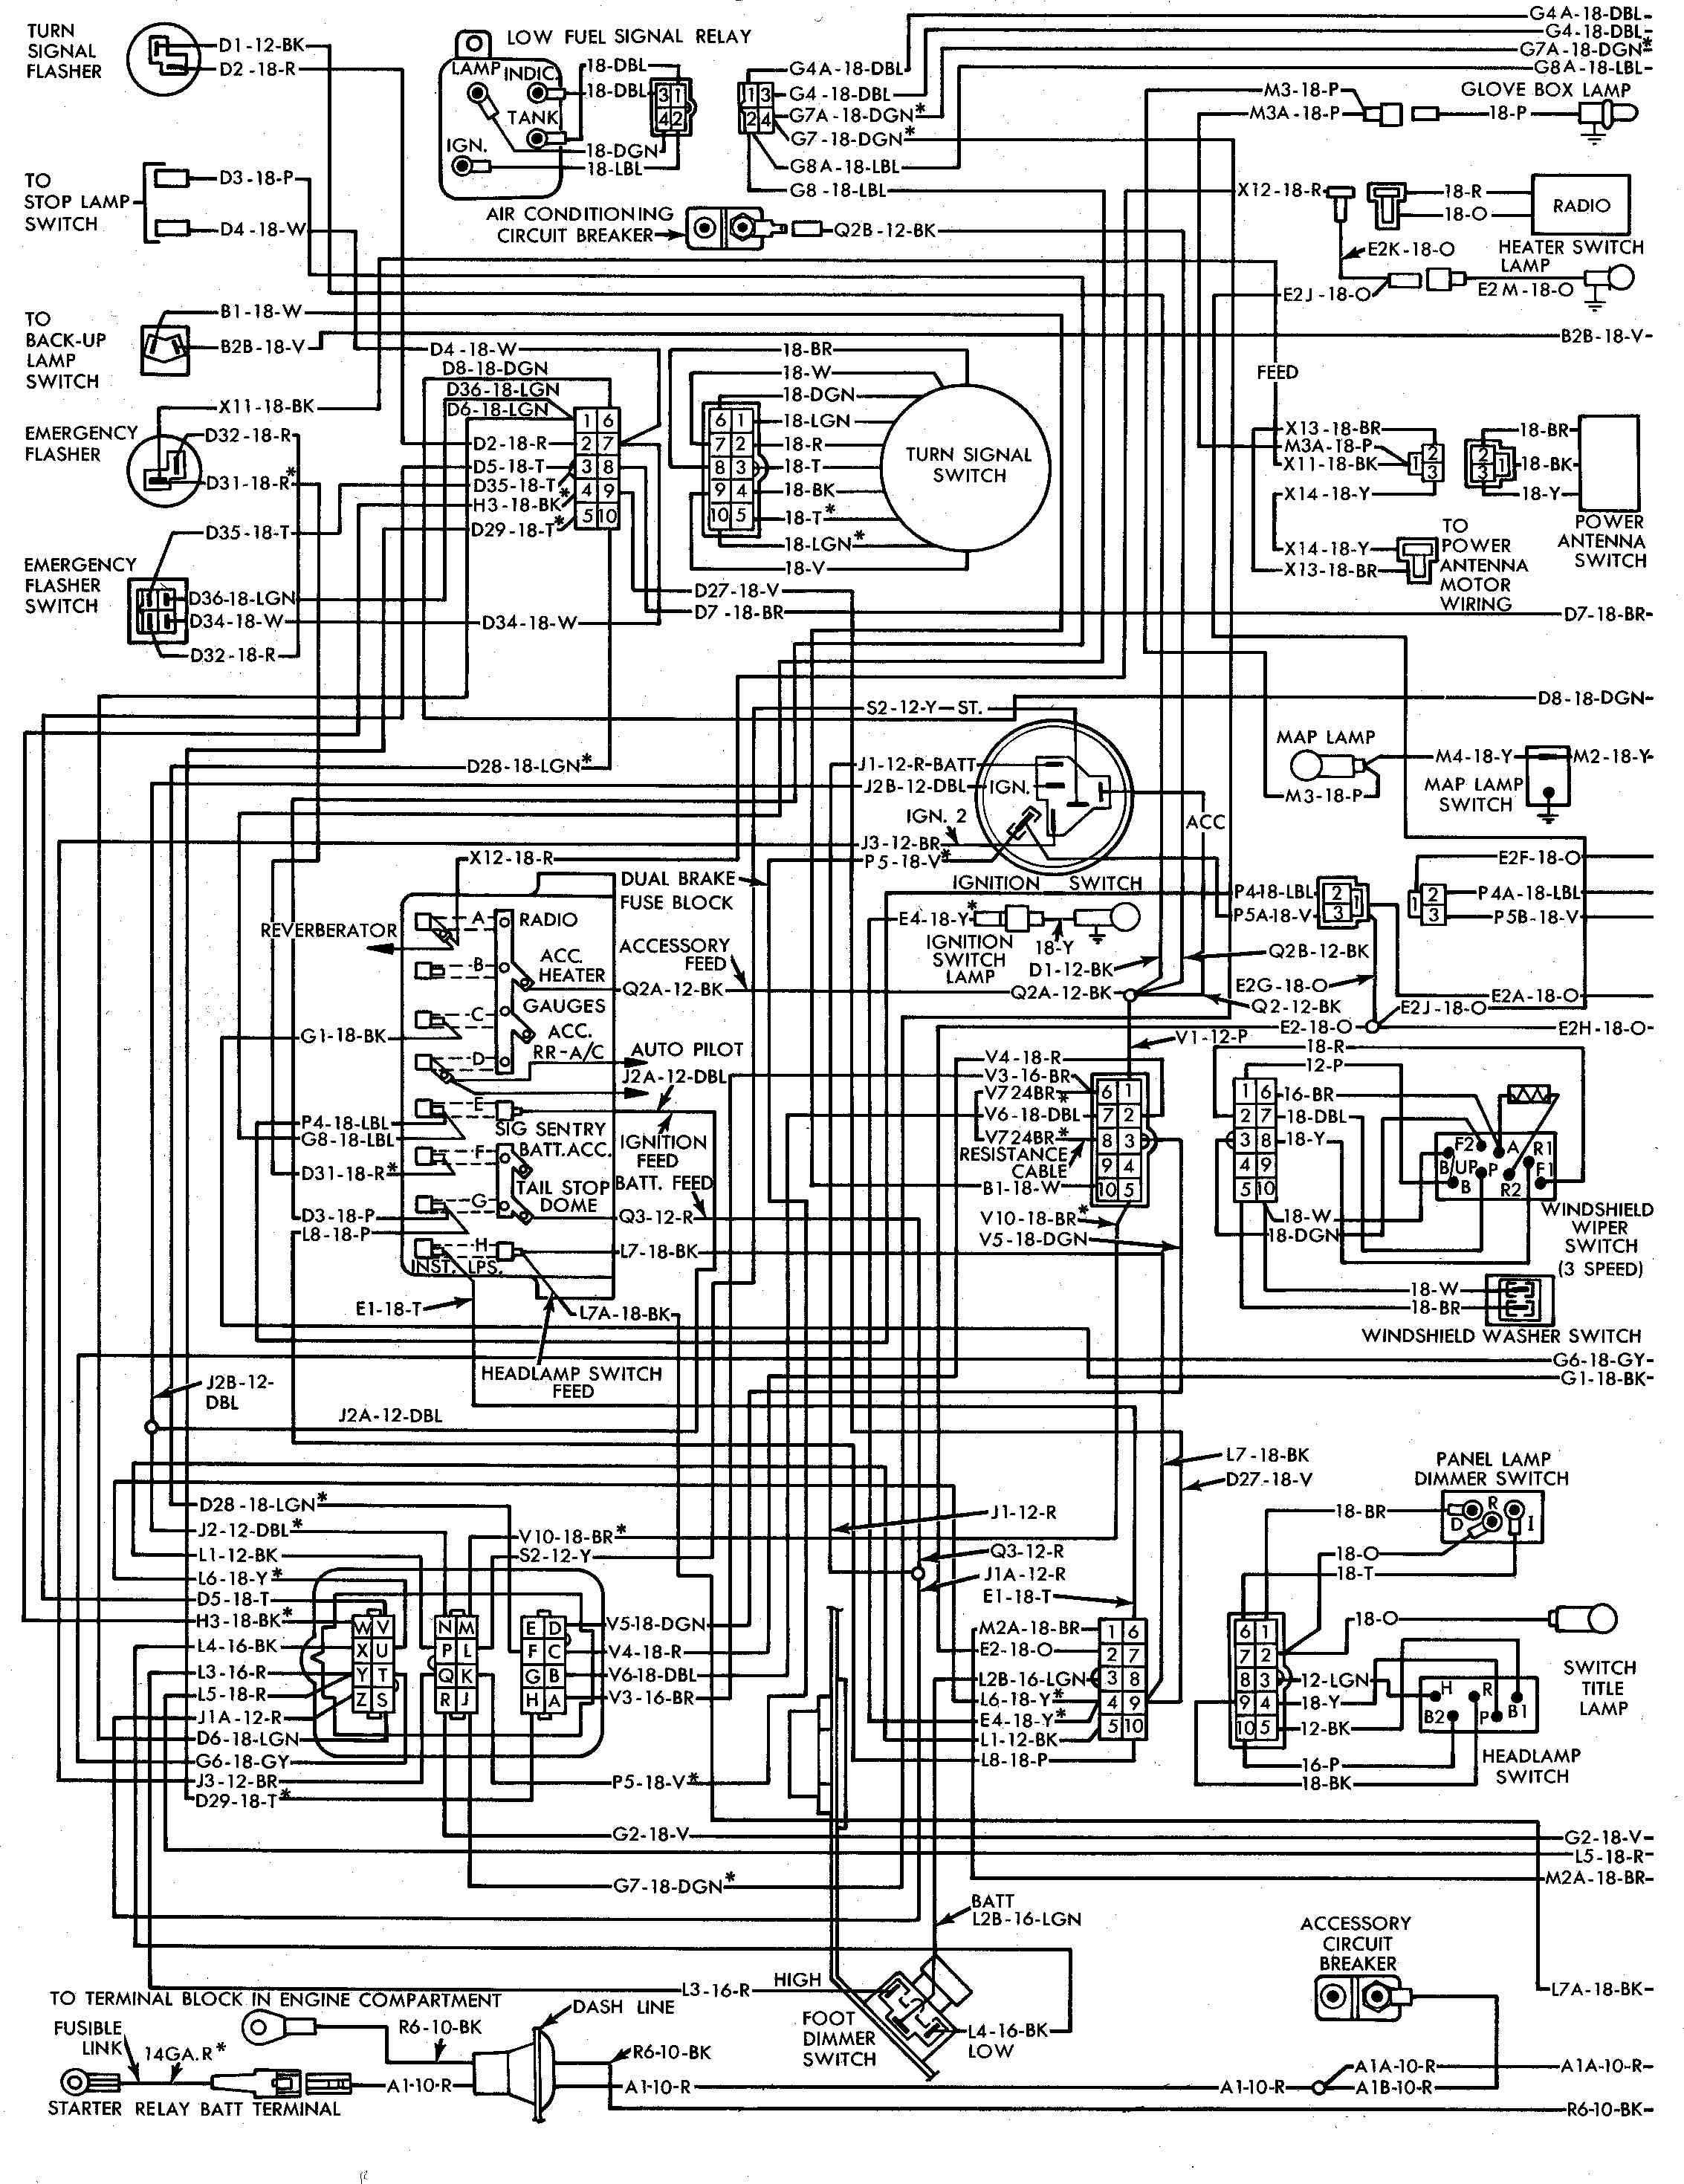 Bb2d32 Wascomat Wiring Diagram